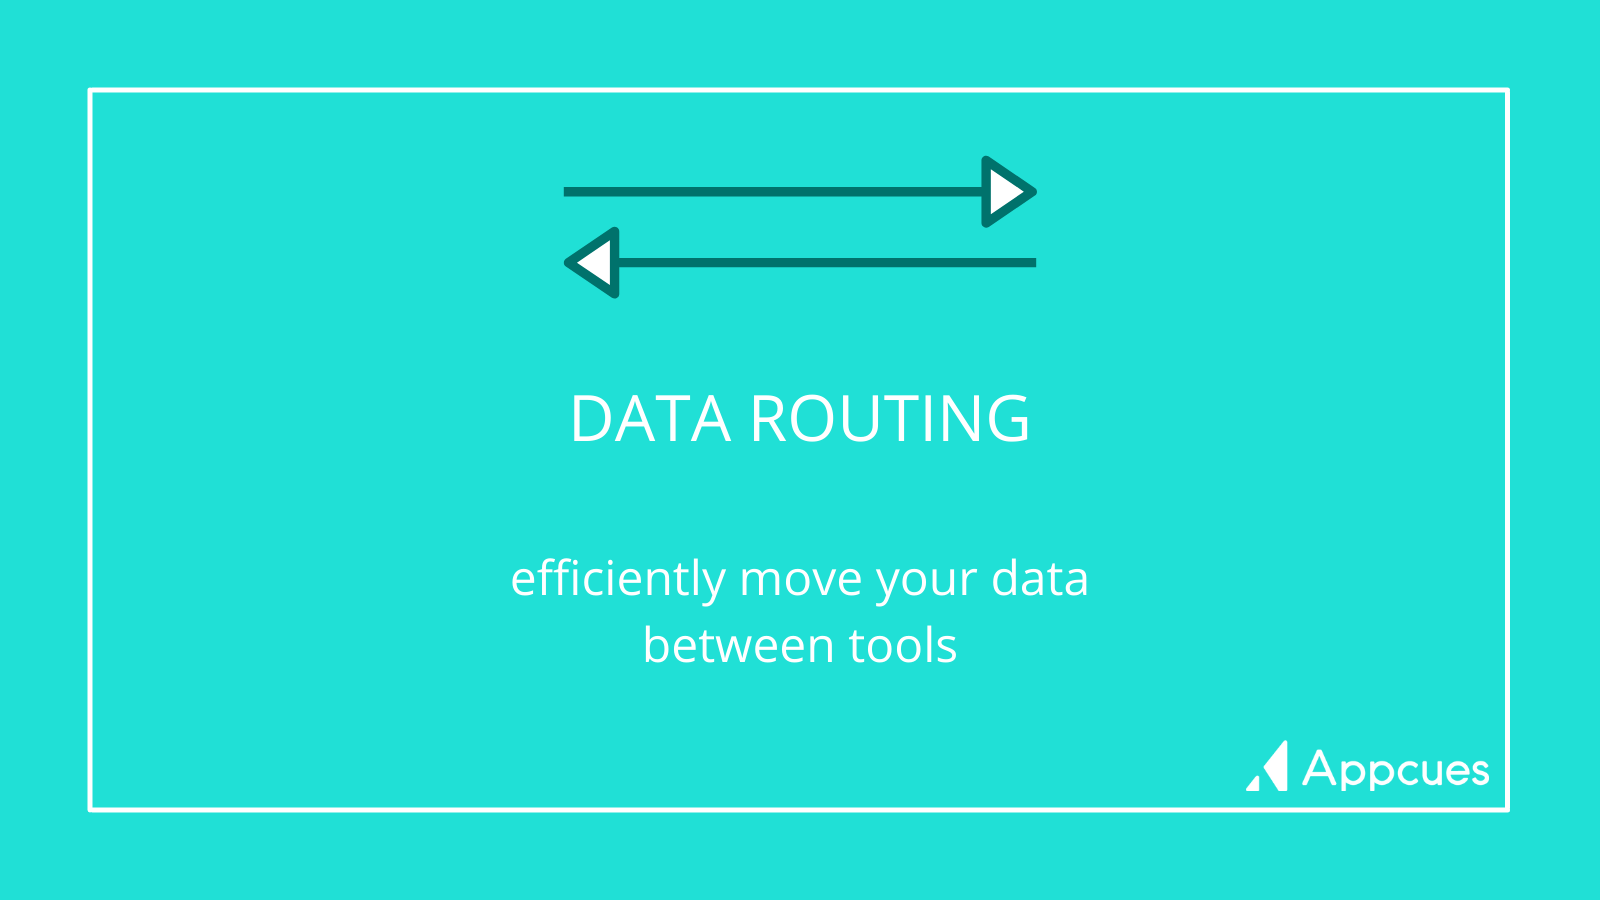 Data Routing: efficiently move your data between tools